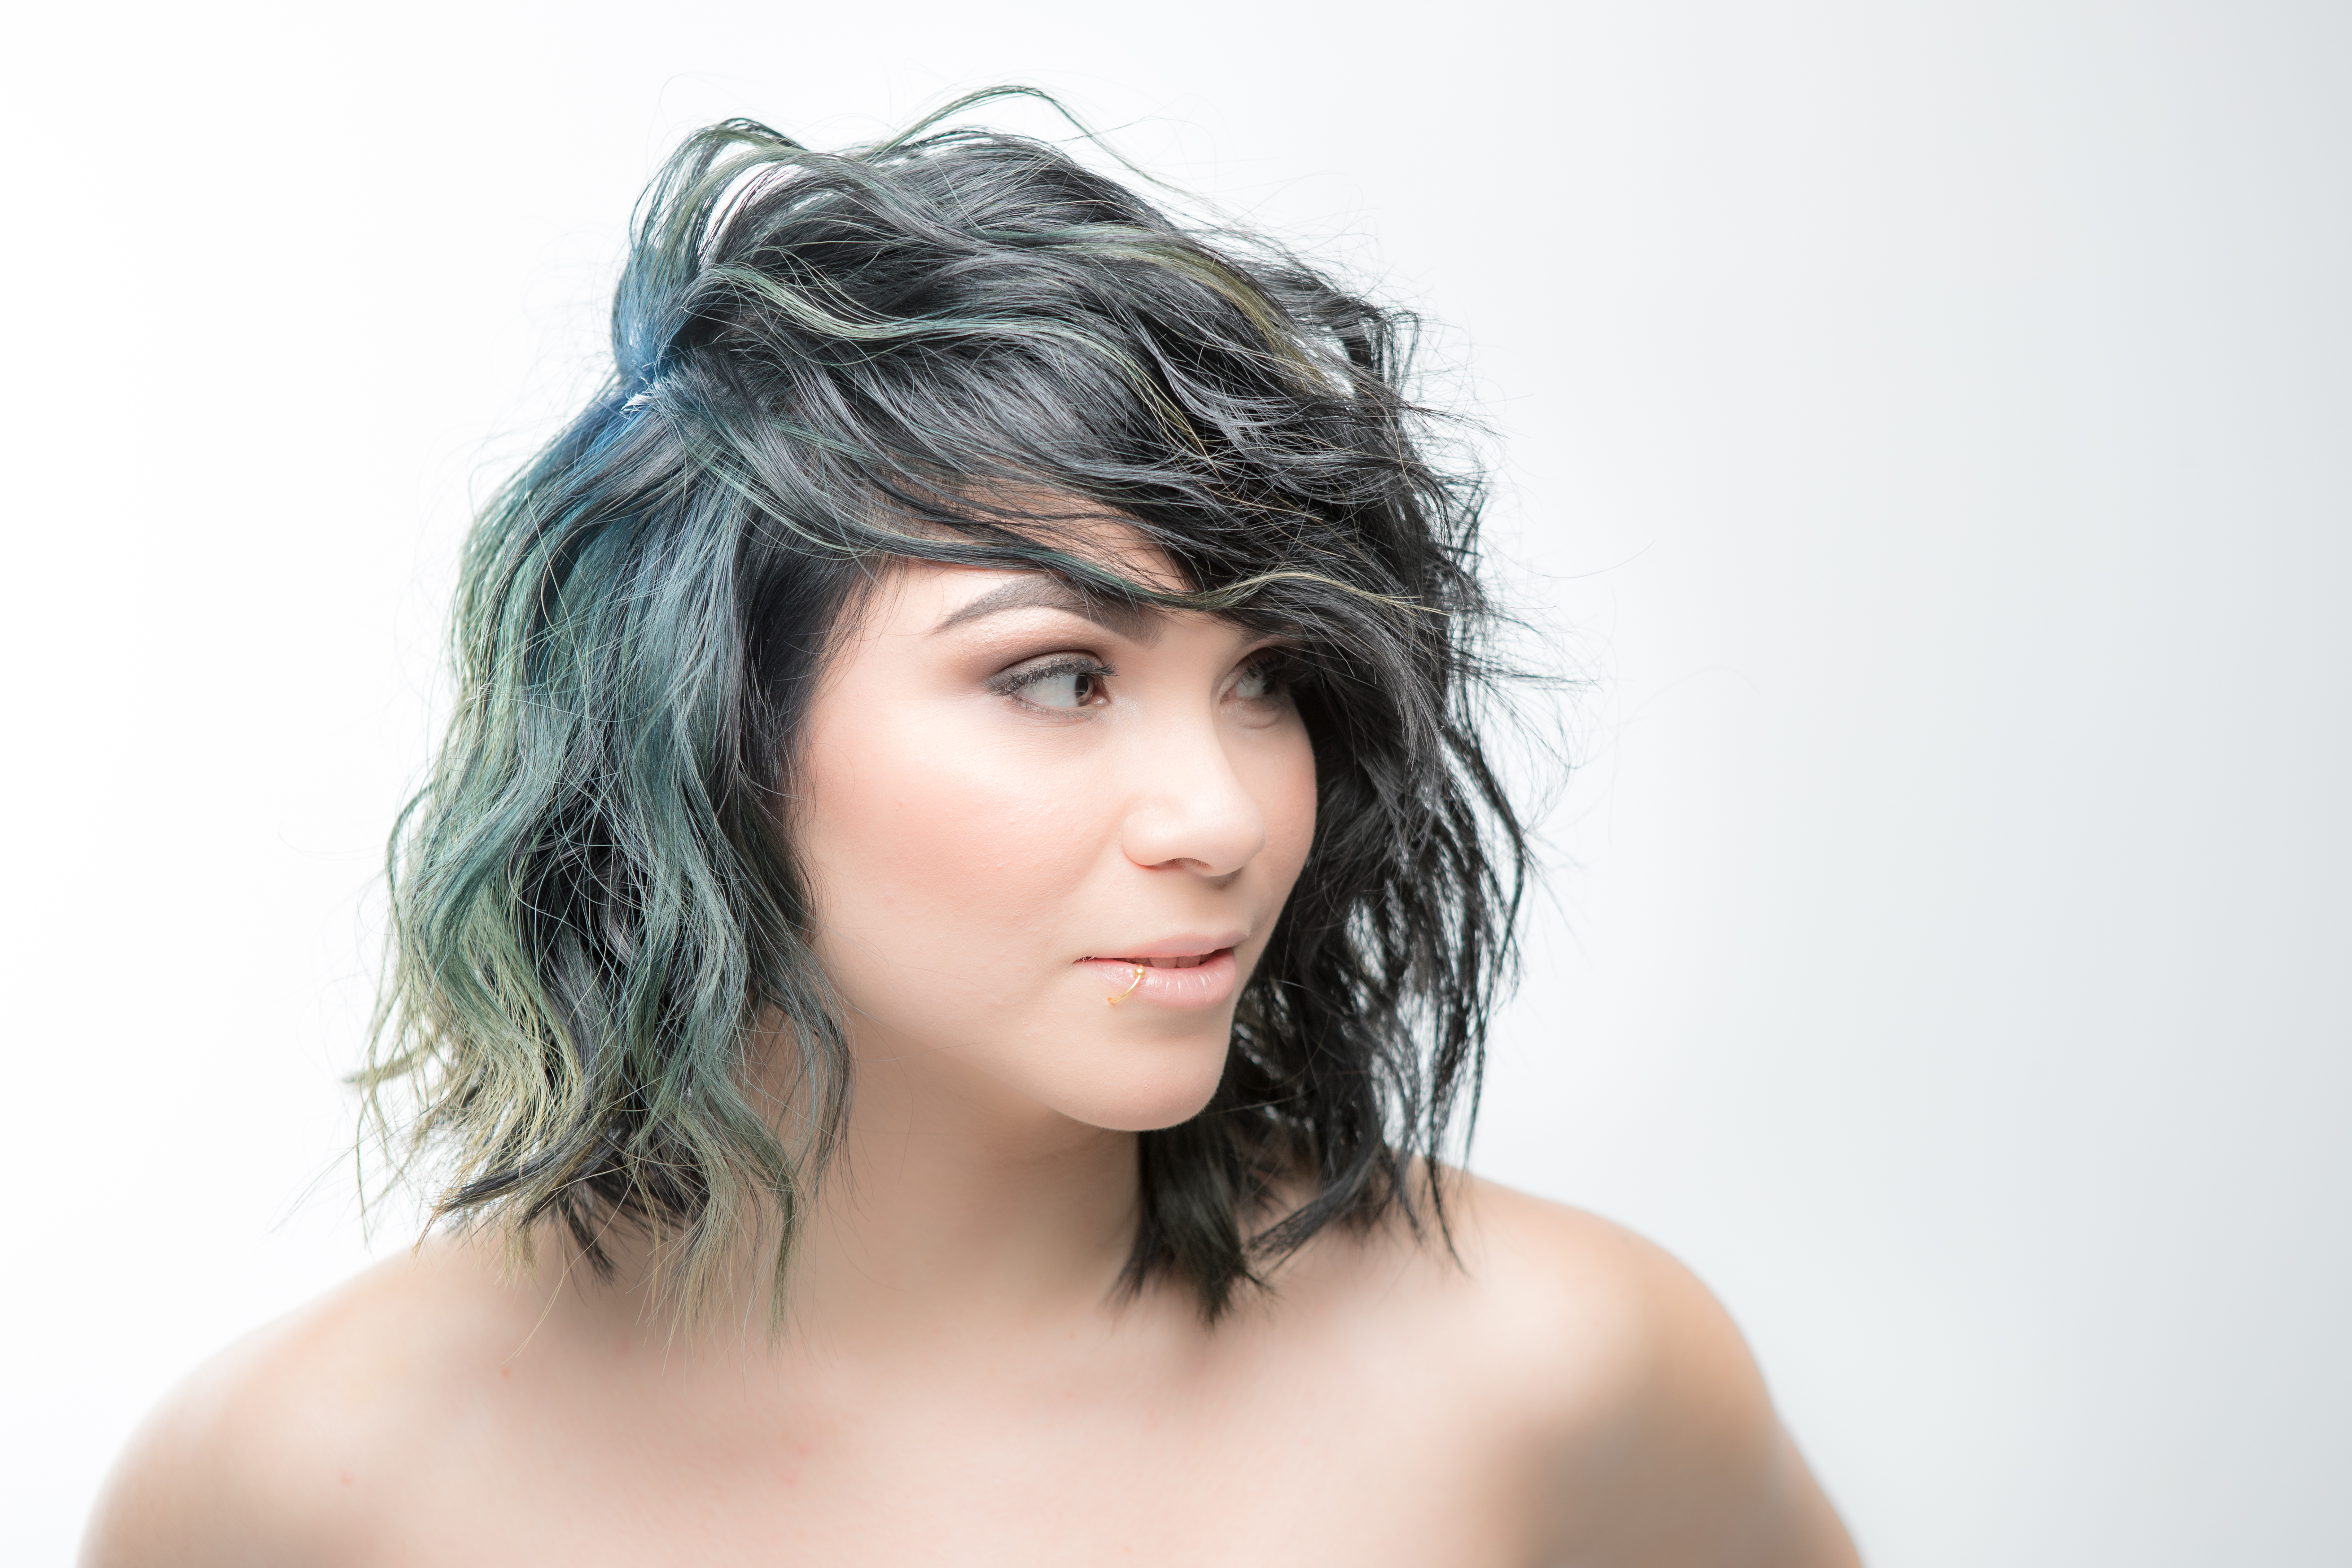 Shoulder-length tousled bob with a wash of green through it.